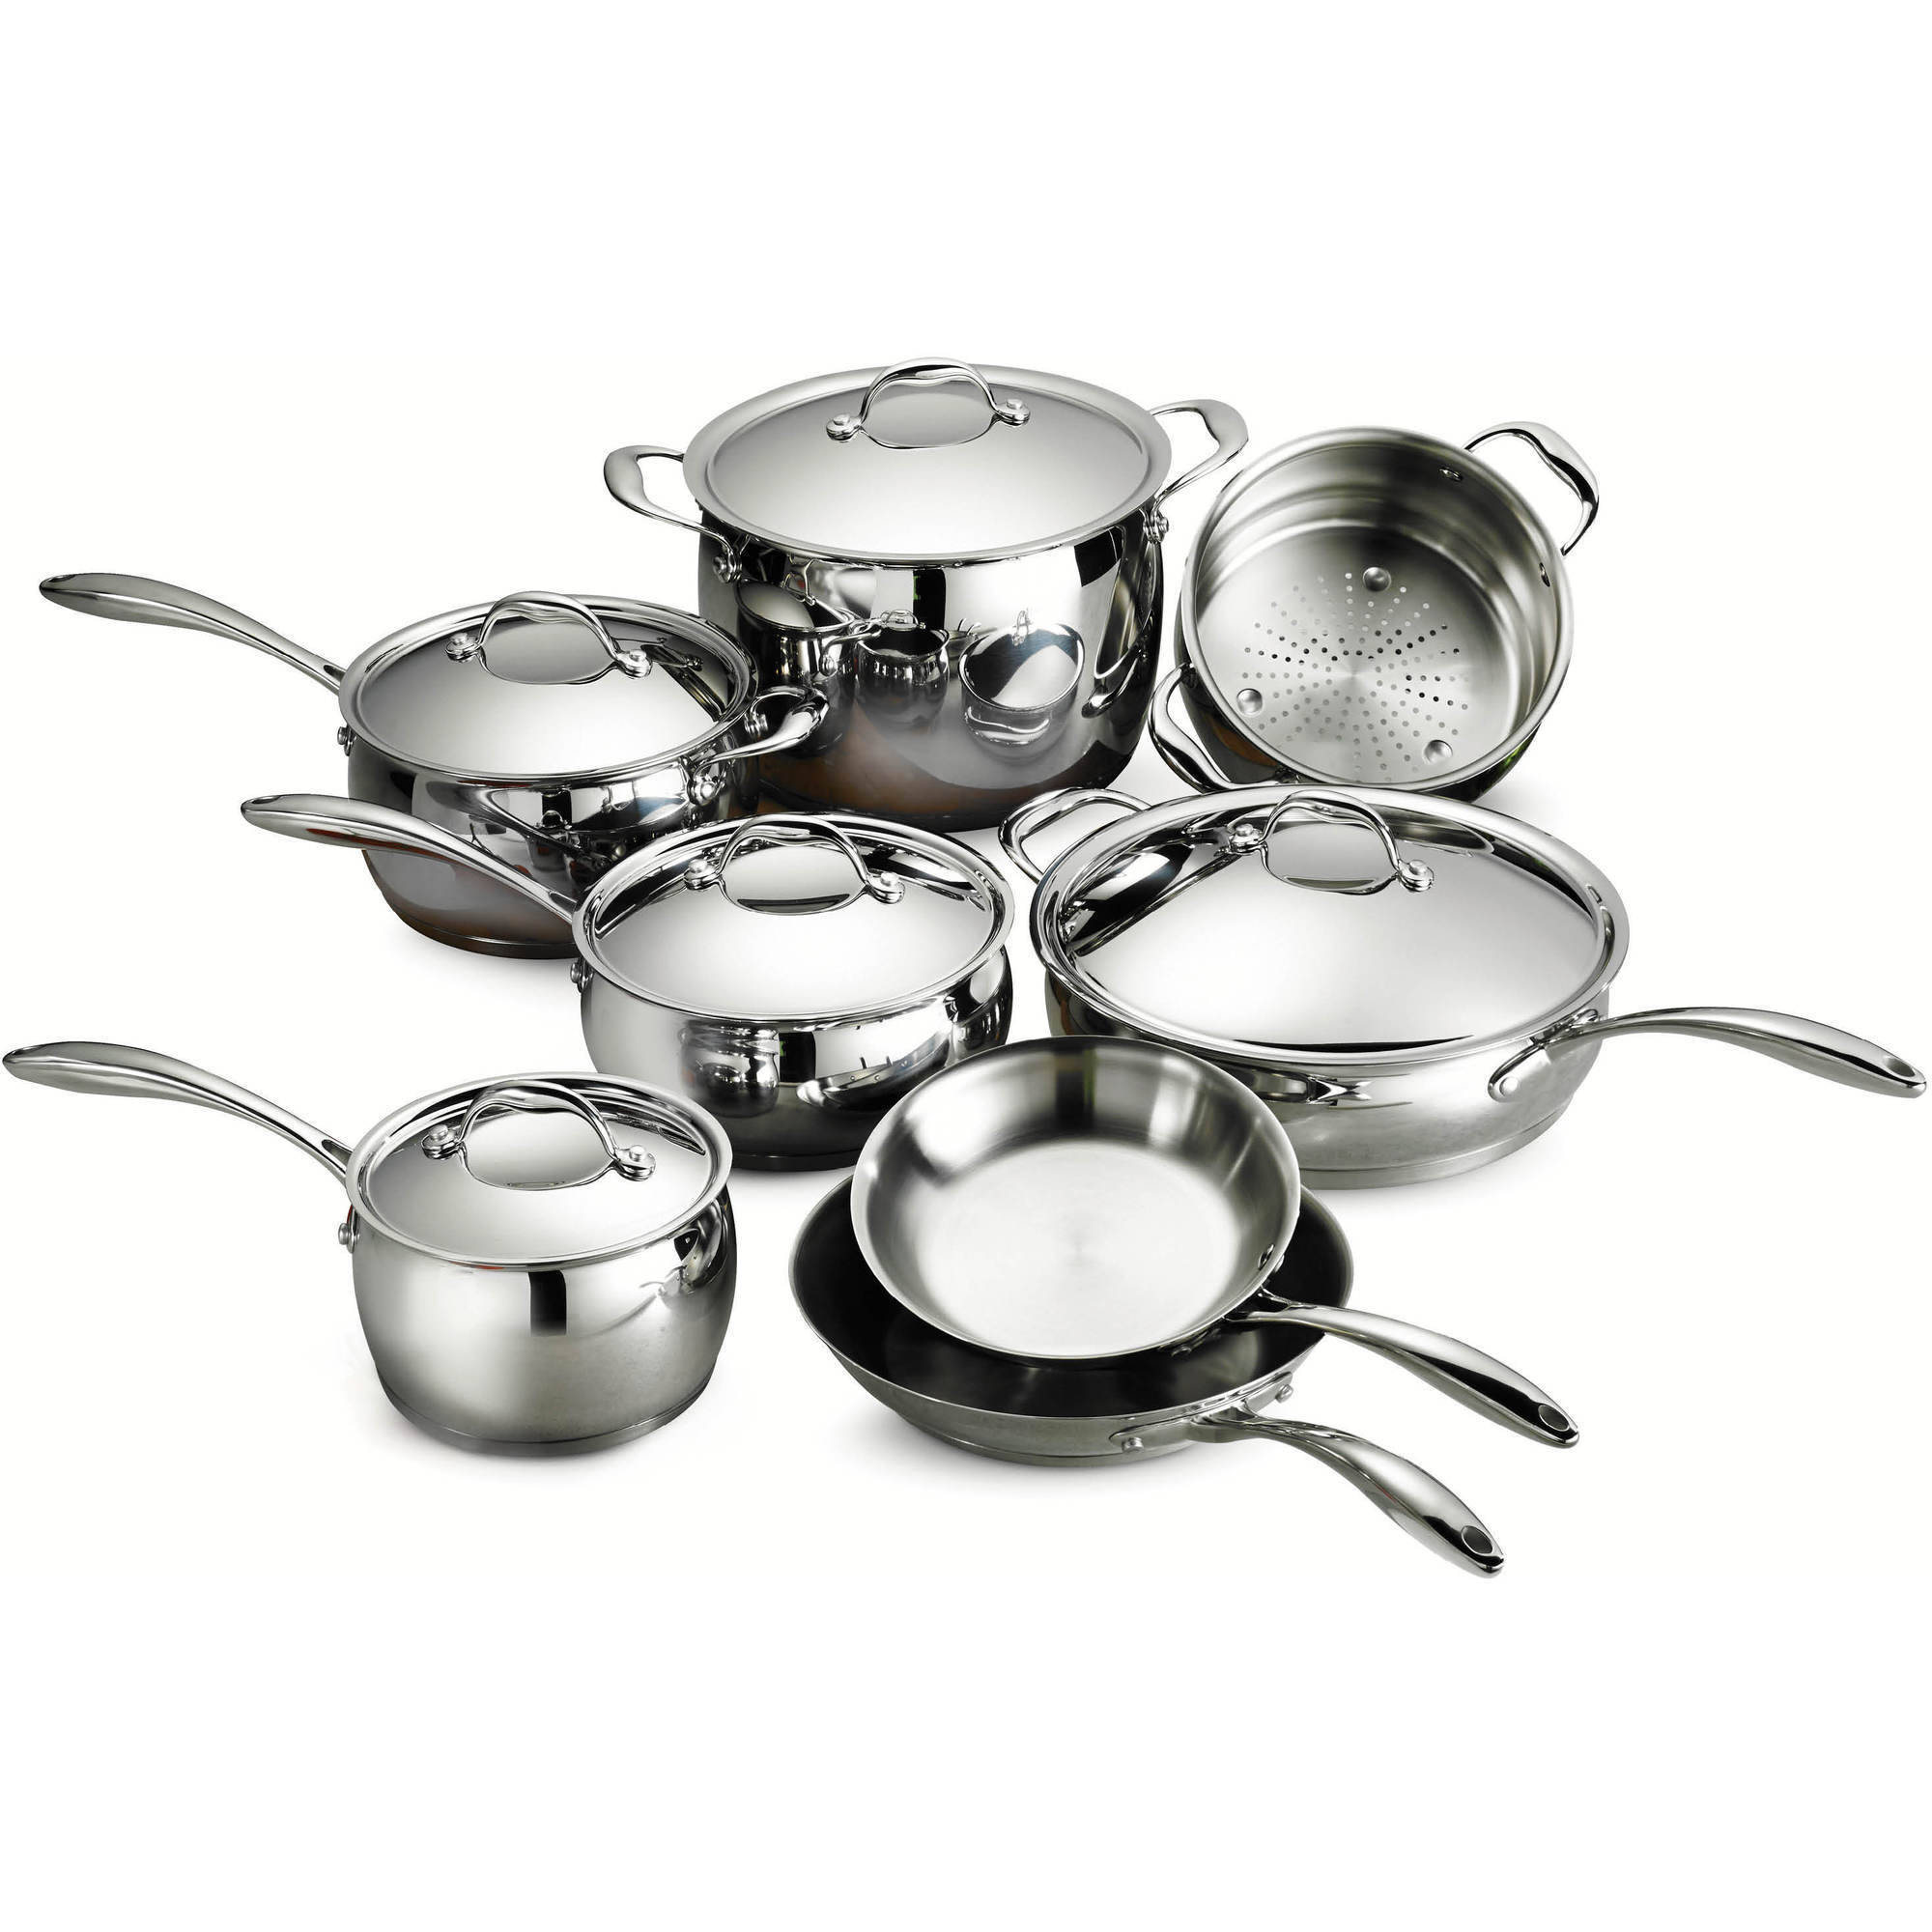 Tramontina Gourmet Domus Stainless Steel 13-Piece Cookware Set by Tramontina